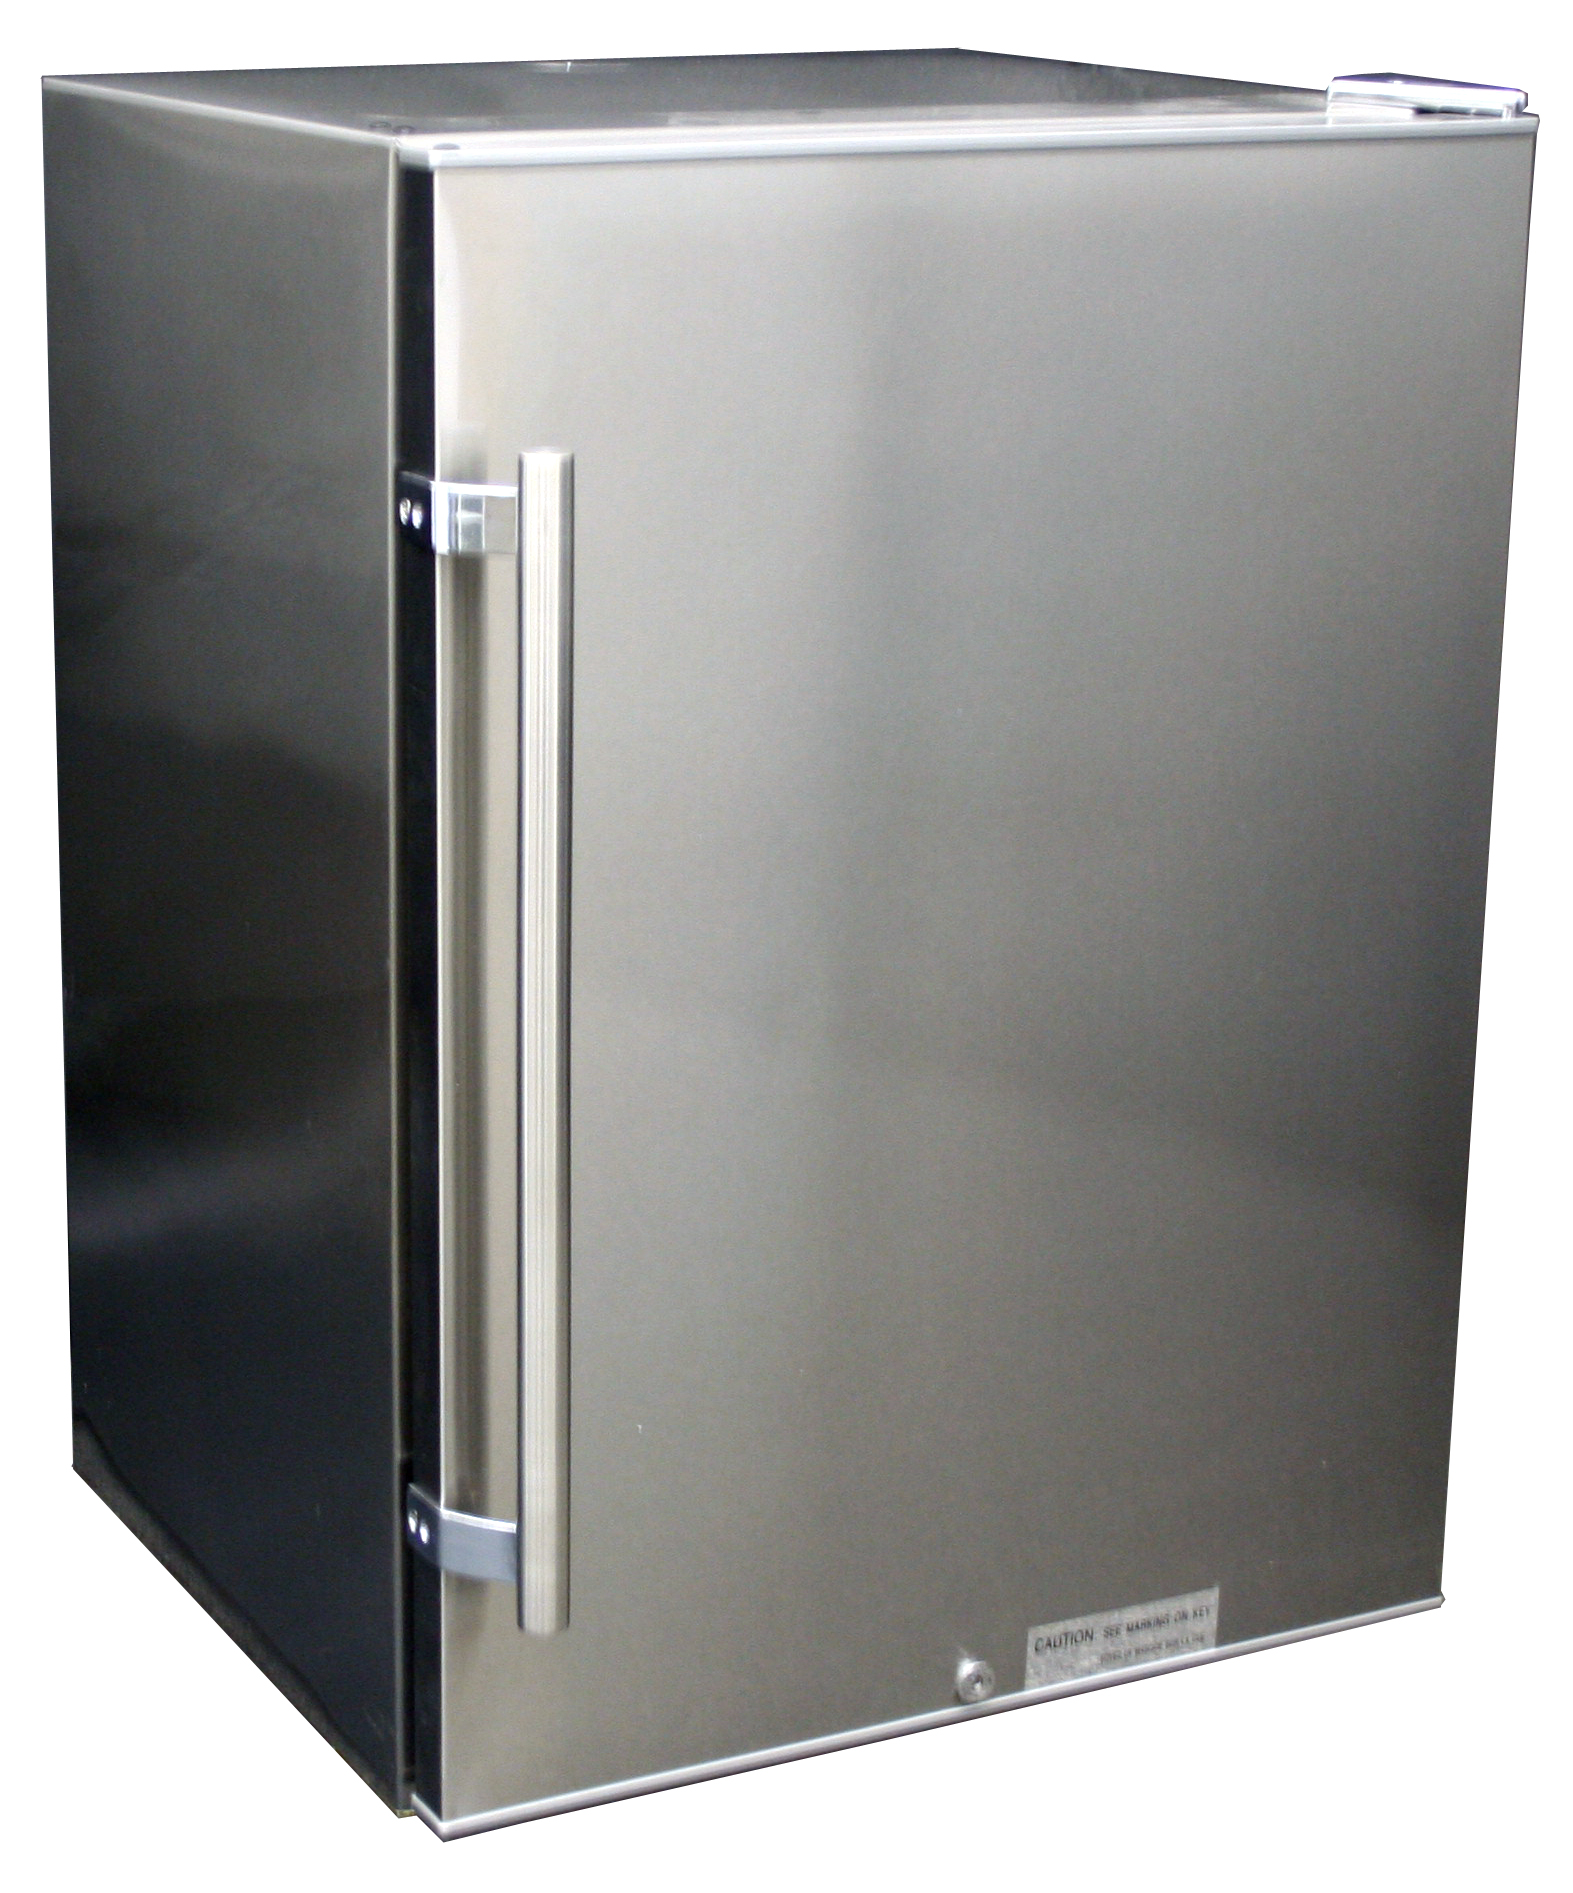 New - Counter Height Two Door Refrigerator Freezer Stainless bunda ...